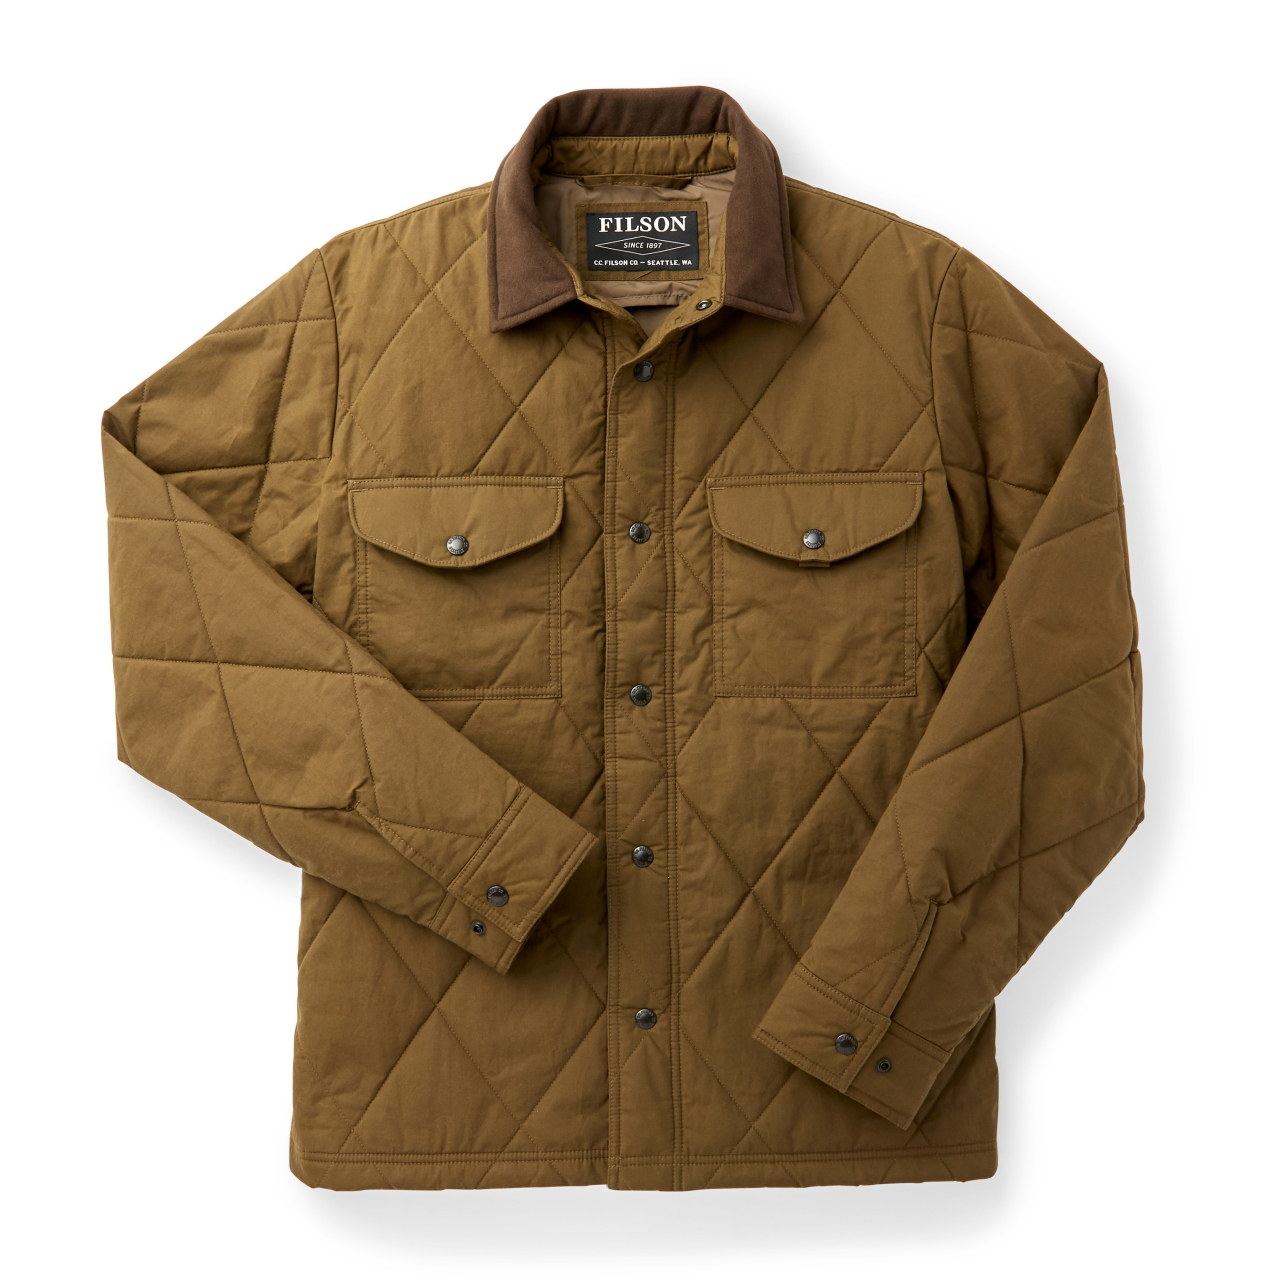 Filson Hyder Quilted Jac-Shirt - marsh olive